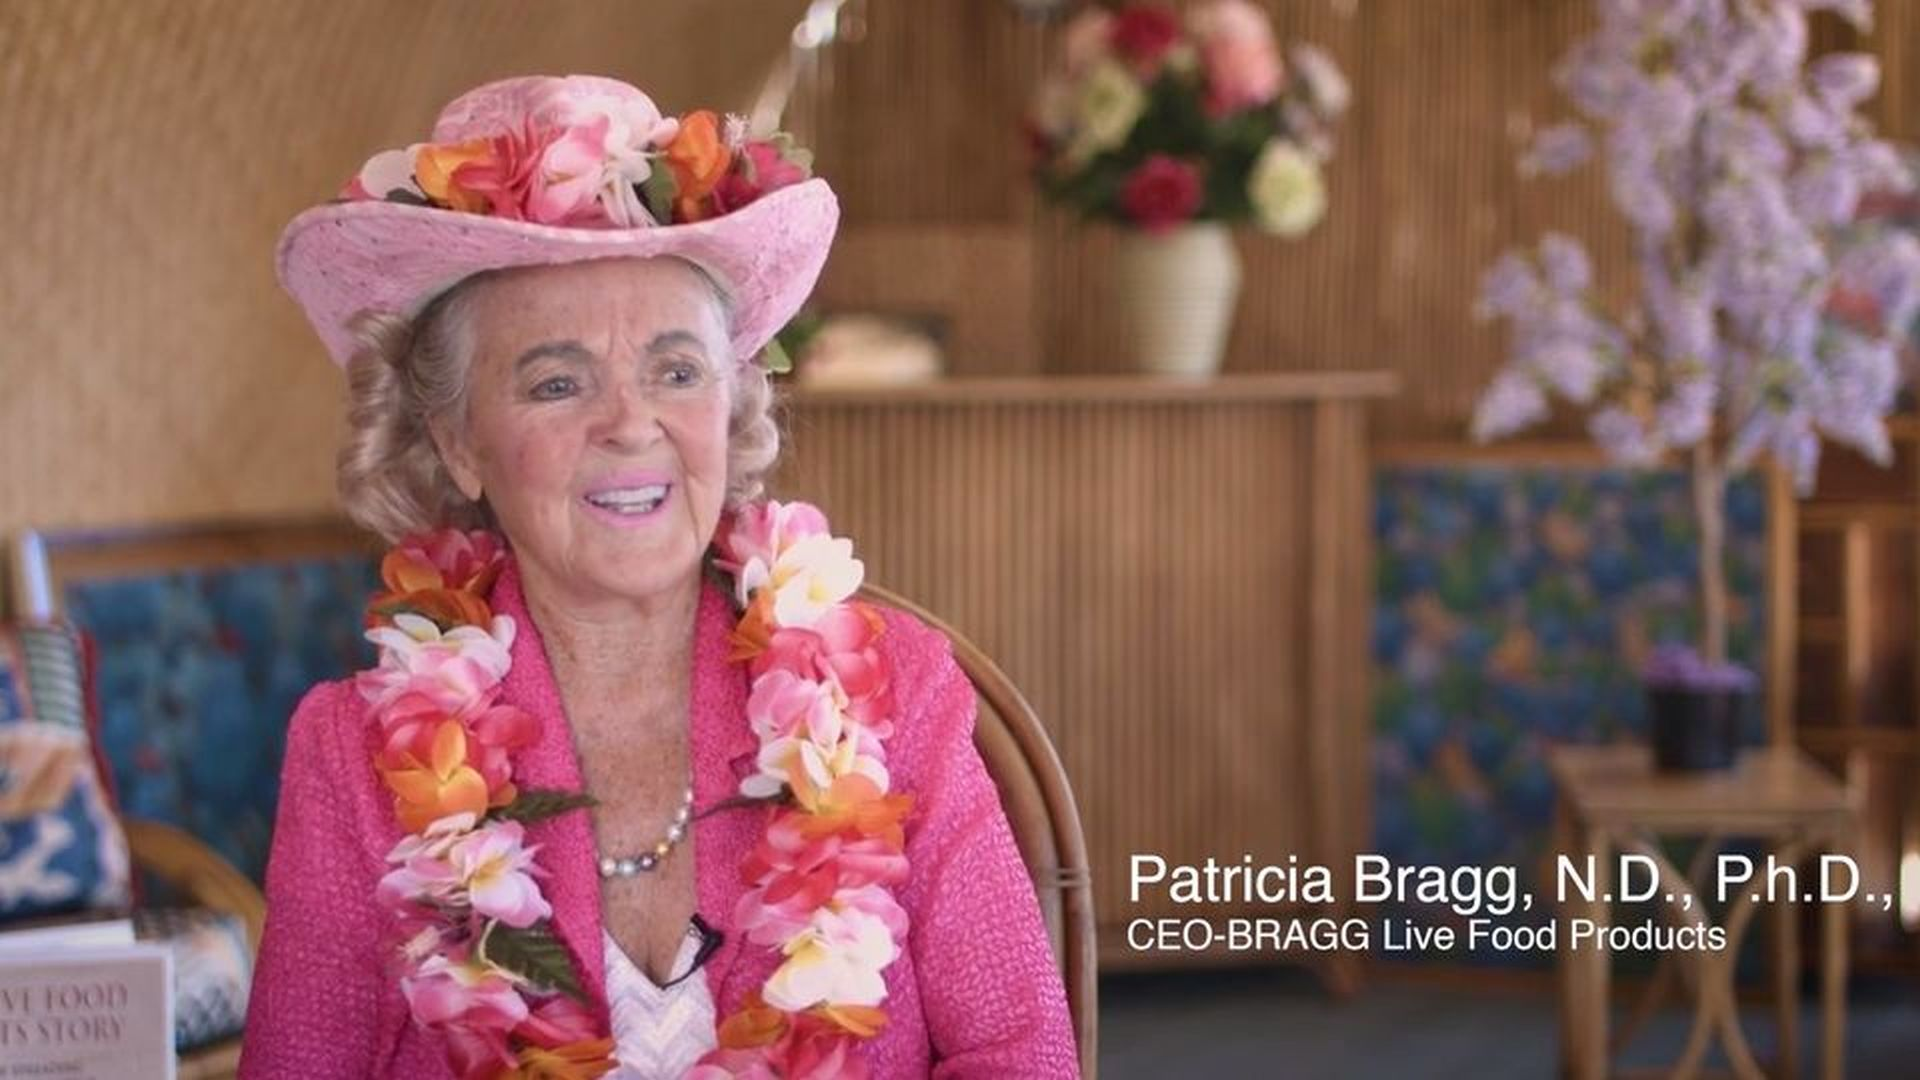 Video: Bragg's Philosophy 'Eating Well, Living Well' Devoted to Customers